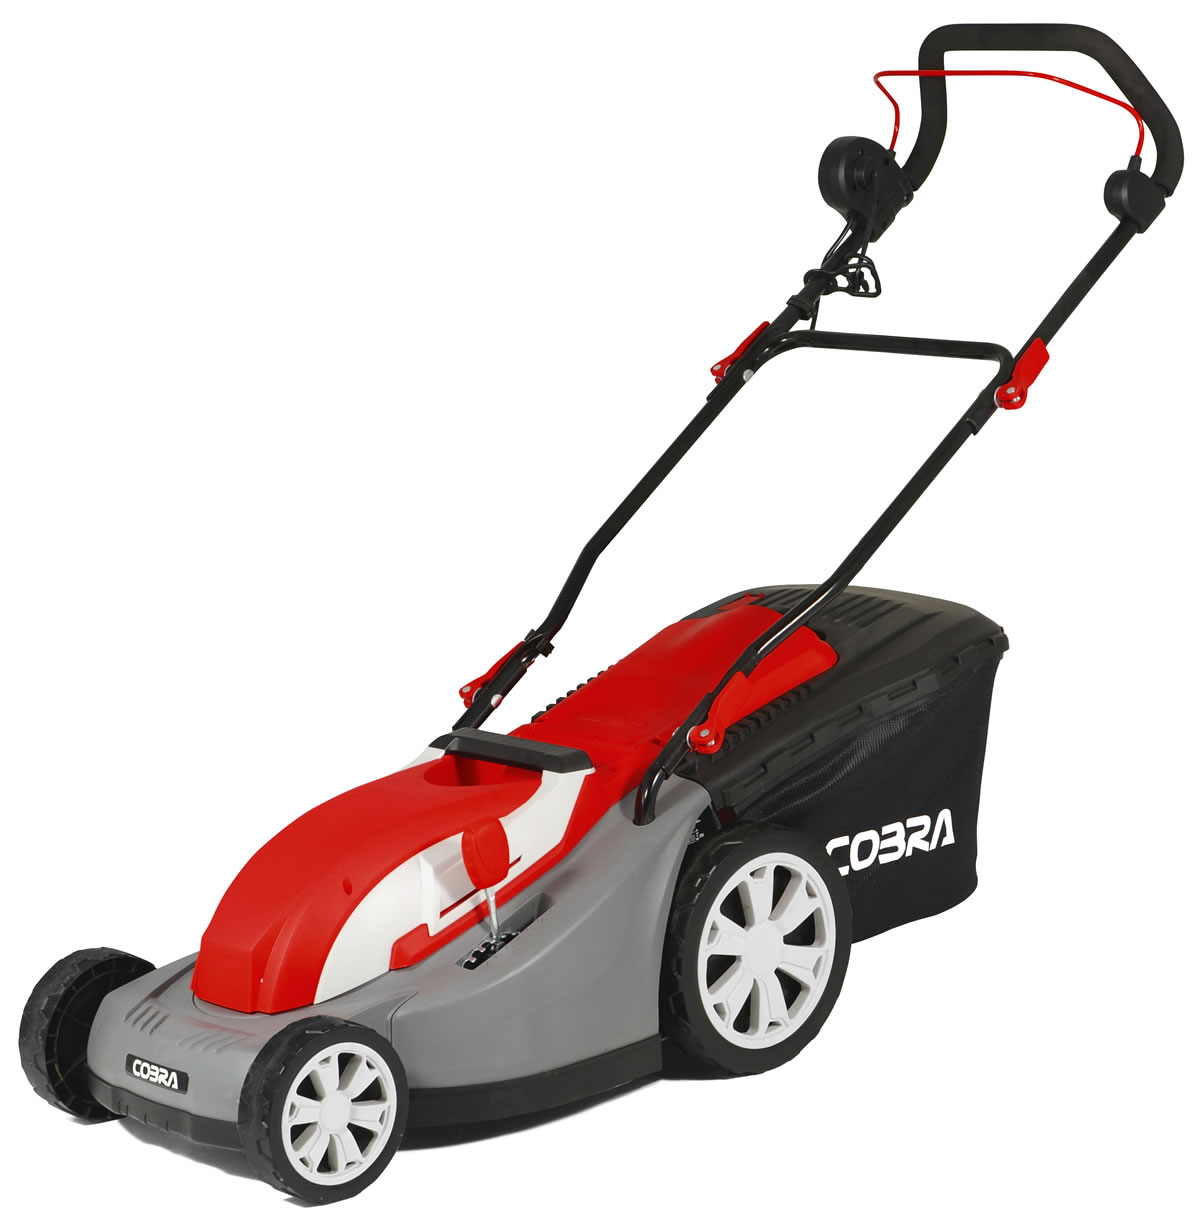 COBRA GTRM34 Electric Lawn Mower